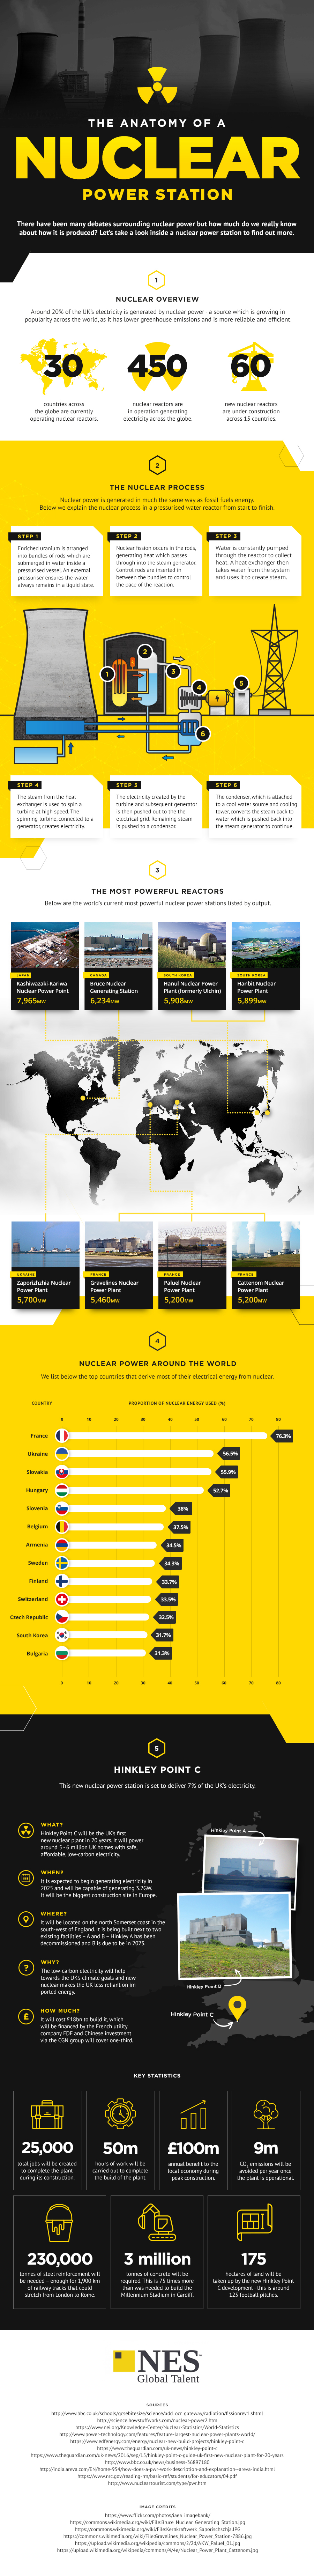 The Anatomy of a Nuclear Power Station